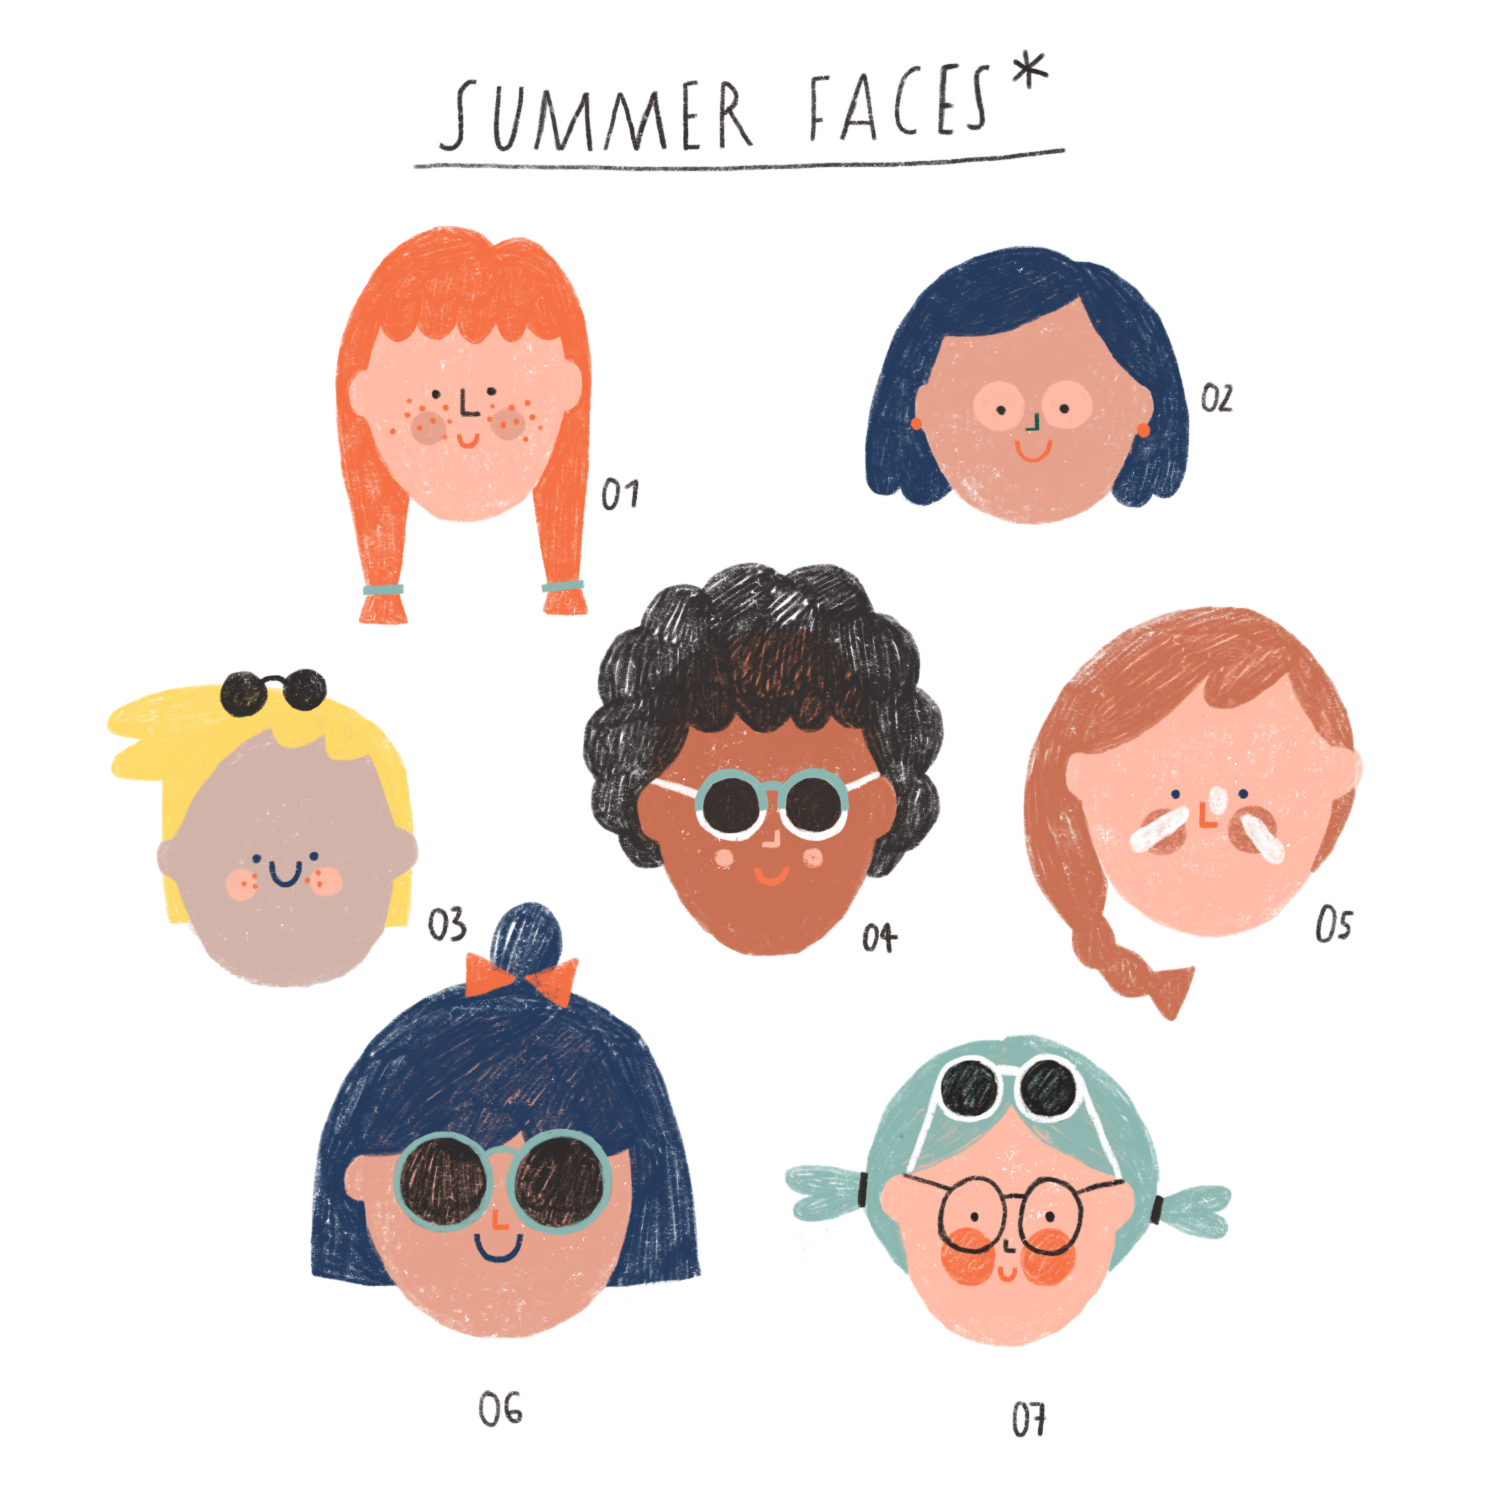 summerfaces.png